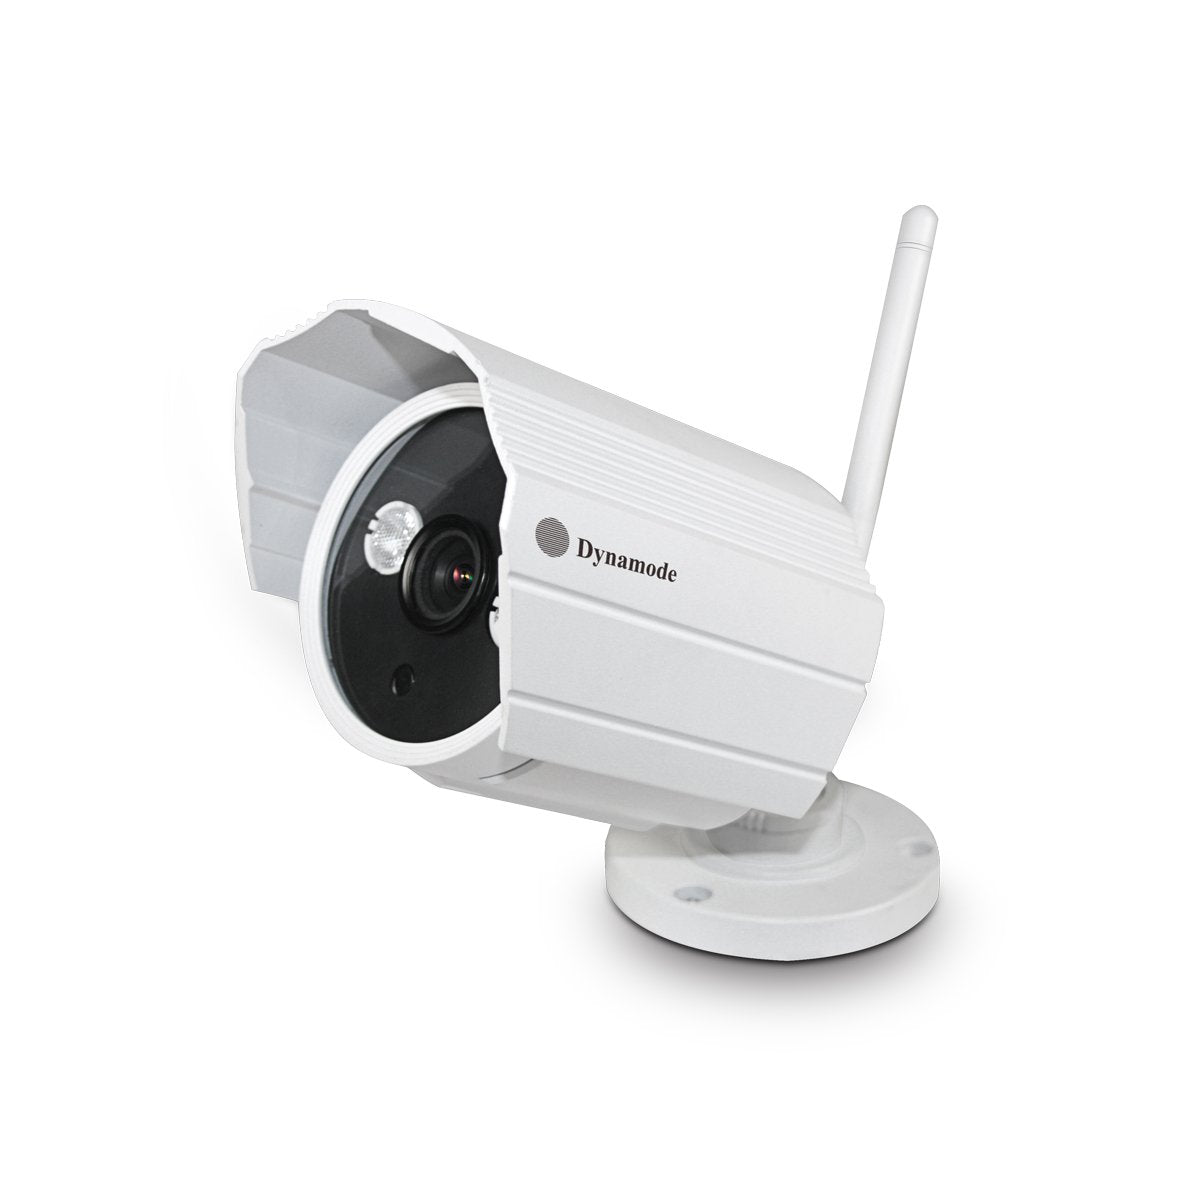 DYN-628 - IP Wireless Camera - VGA, 15m IR-Cut